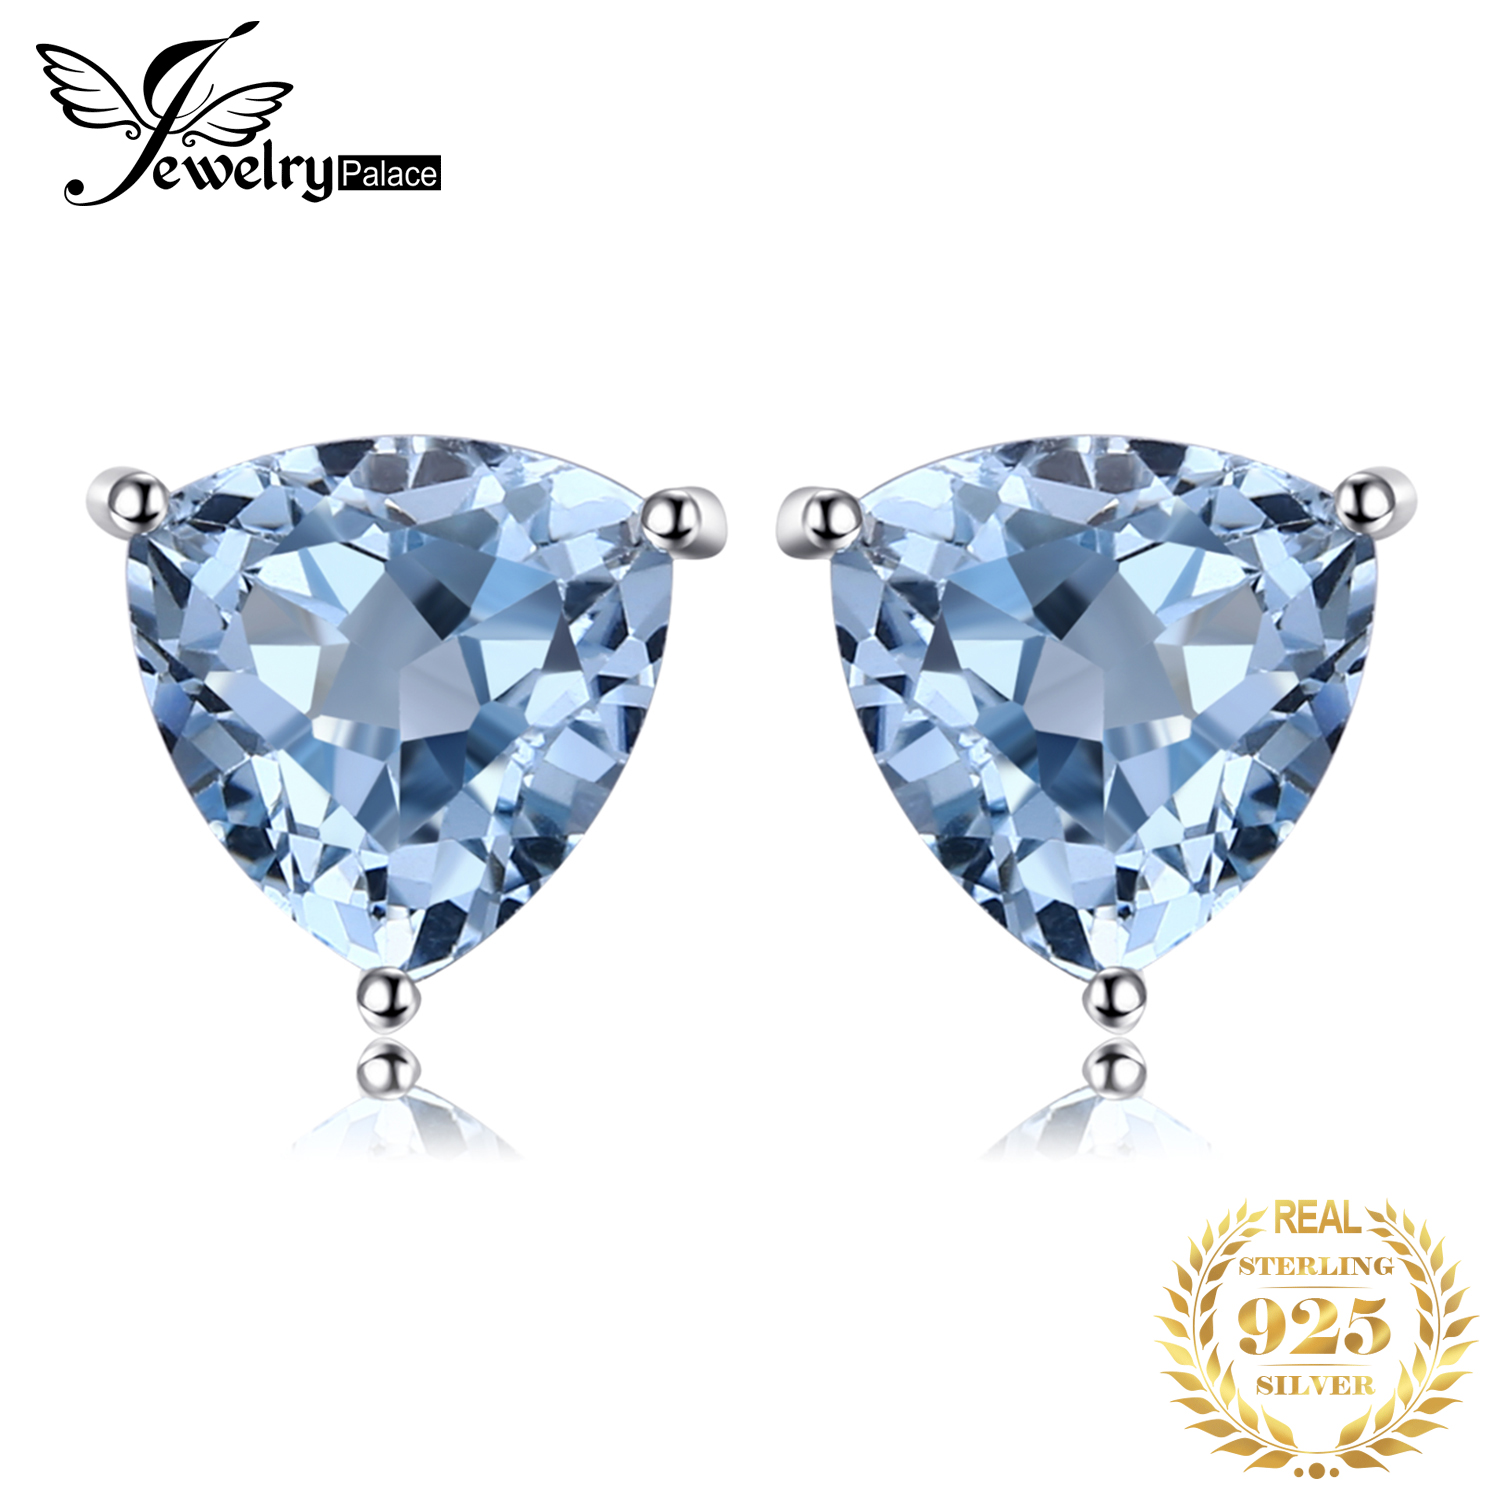 JewelryPalace 1.8ct Genuine Blue Topaz Stud Earrings 925 Sterling Silver Earrings For Women Korean Earings Fashion Jewelry 2020